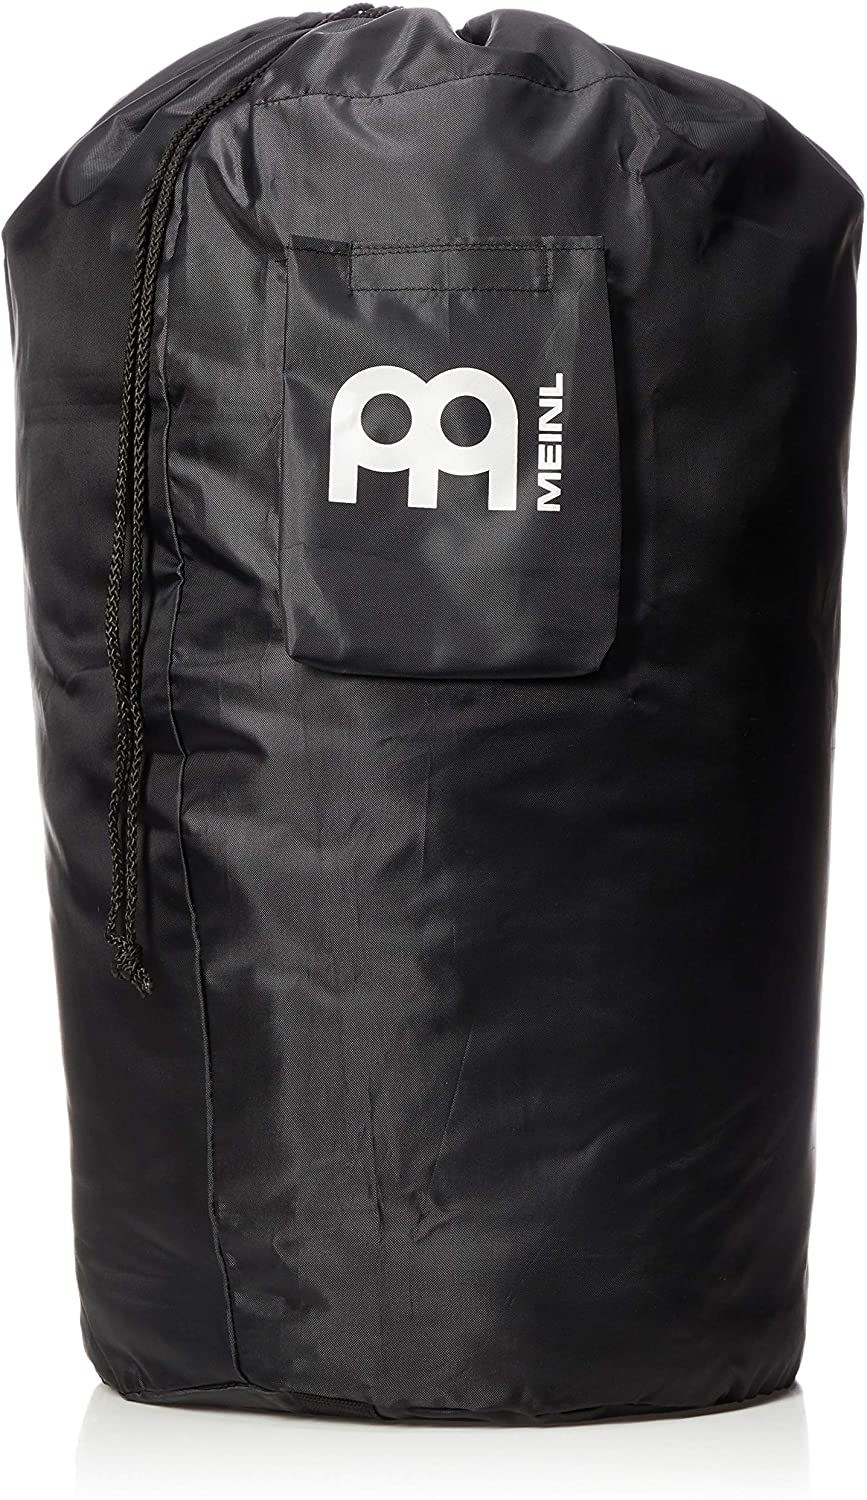 Meinl Percussion Universal Gig Bag with Shoulder Strap and Draw String-Fits All Conga Sizes-Heavy Duty Nylon, Carrying Grip and Exterior Pocket, Black (MSTCOB)